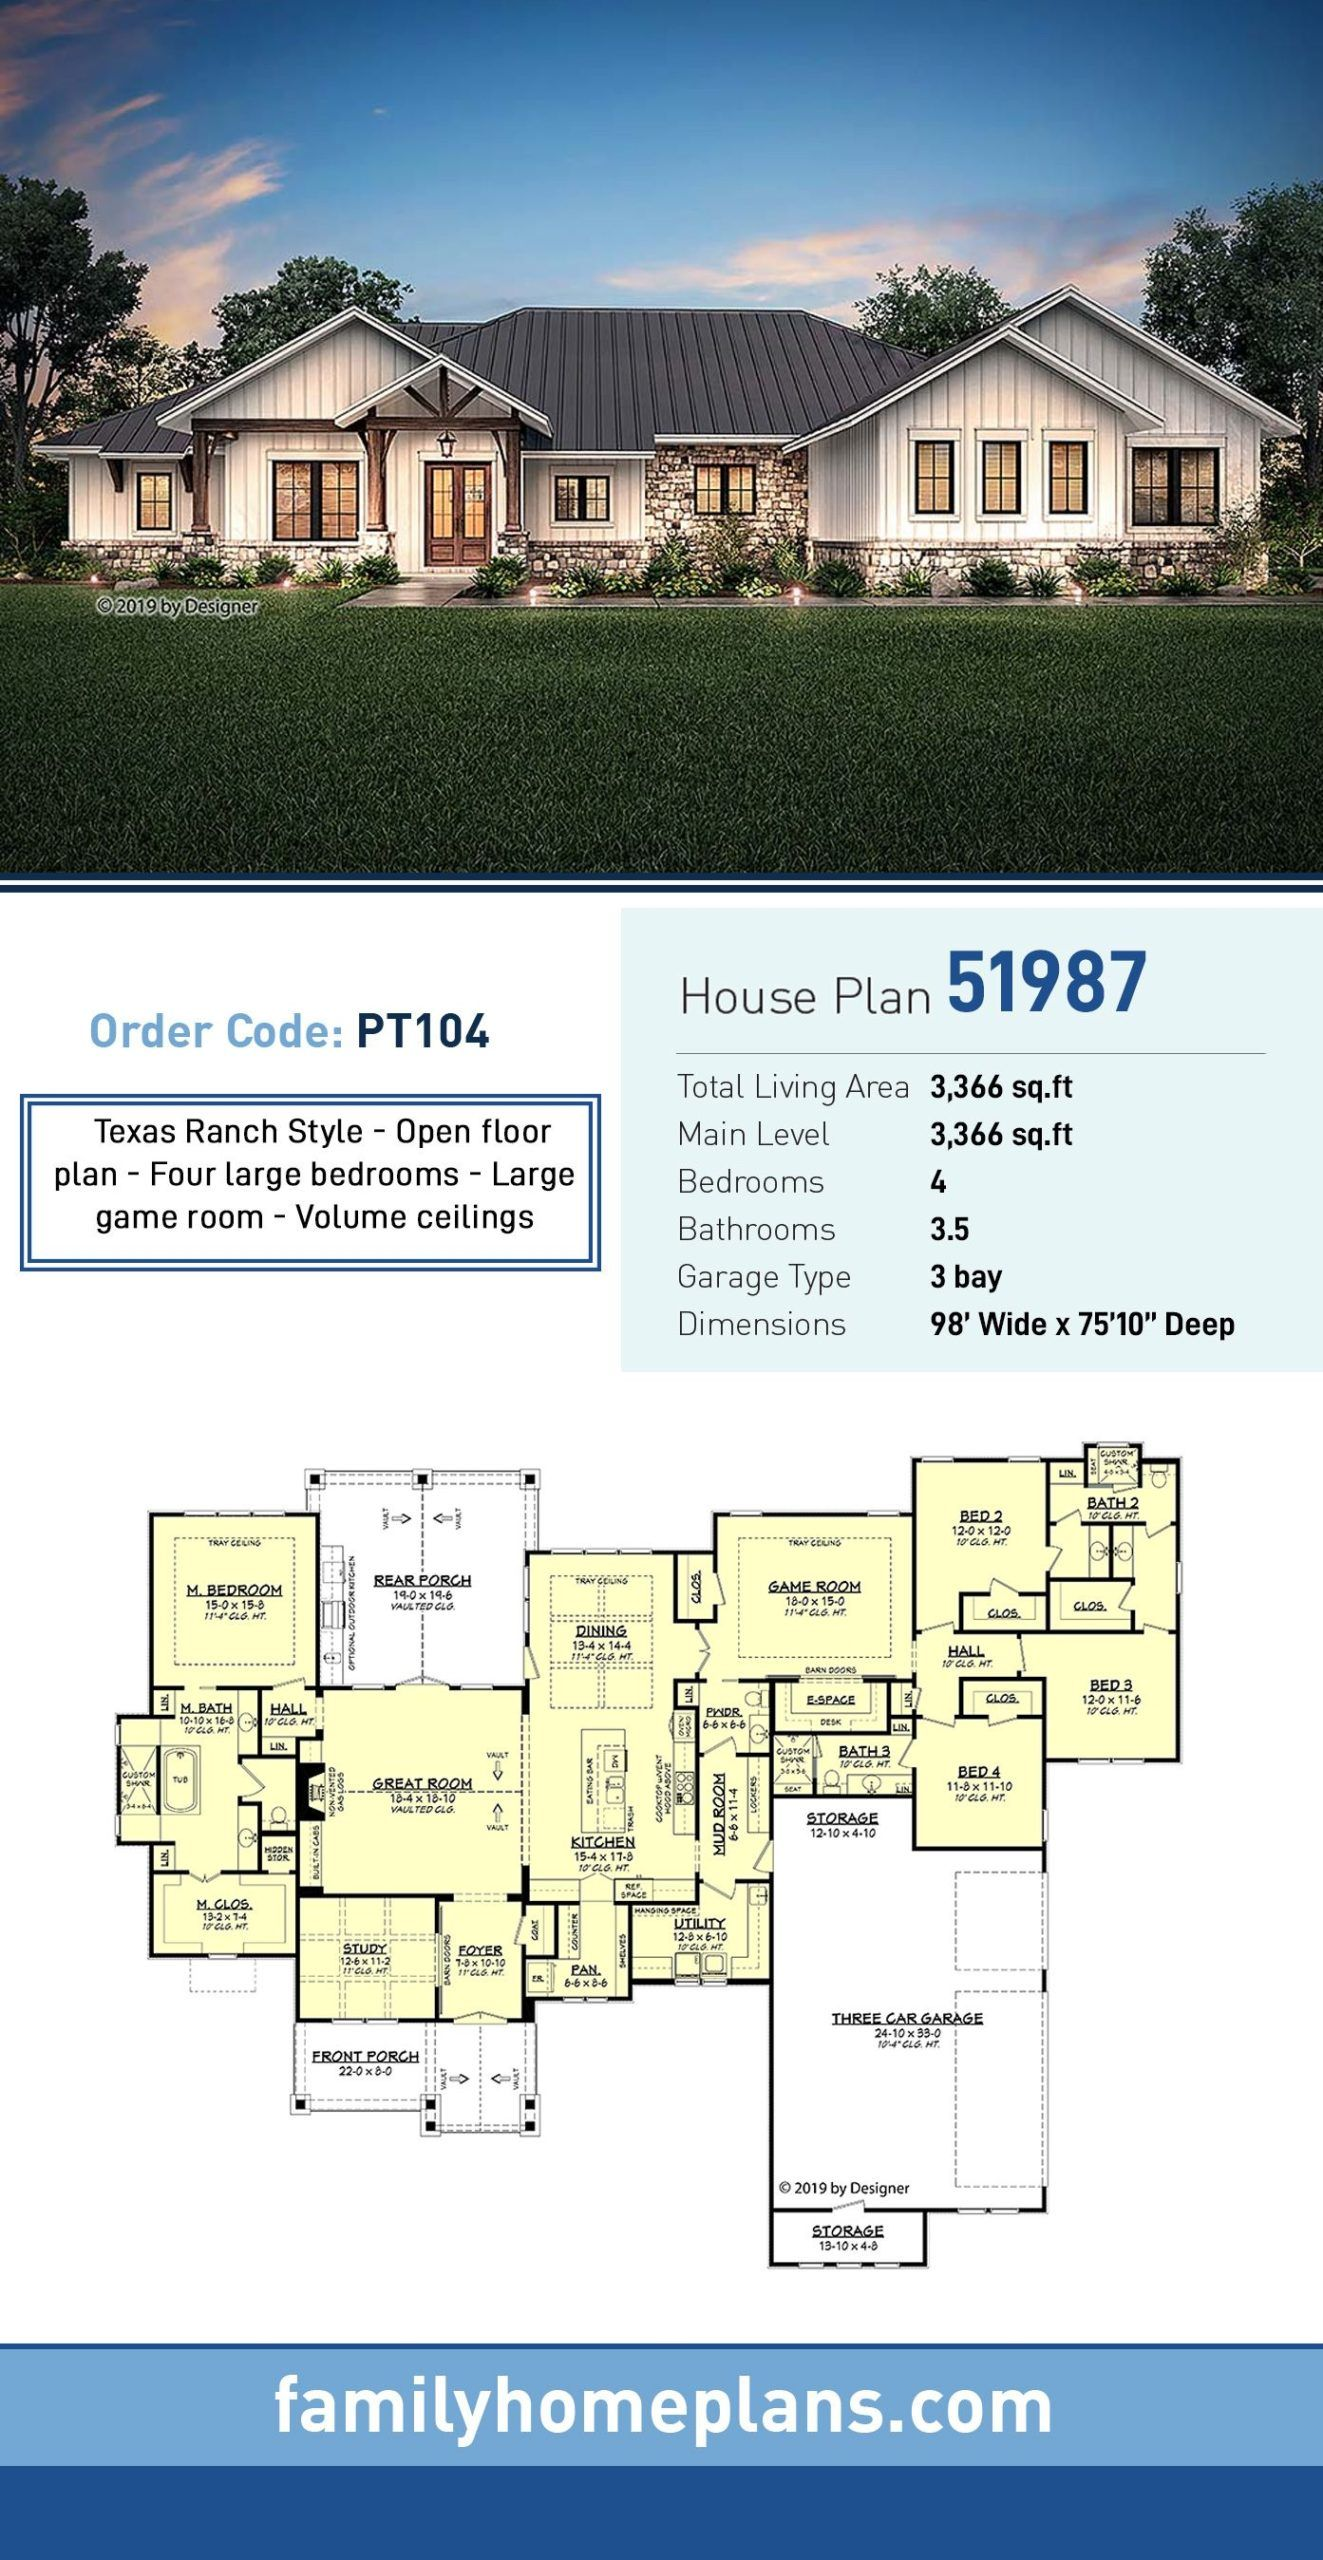 Ranch Style House Plan 51987 with 4 Bed 4 Bath 3 Car Garage